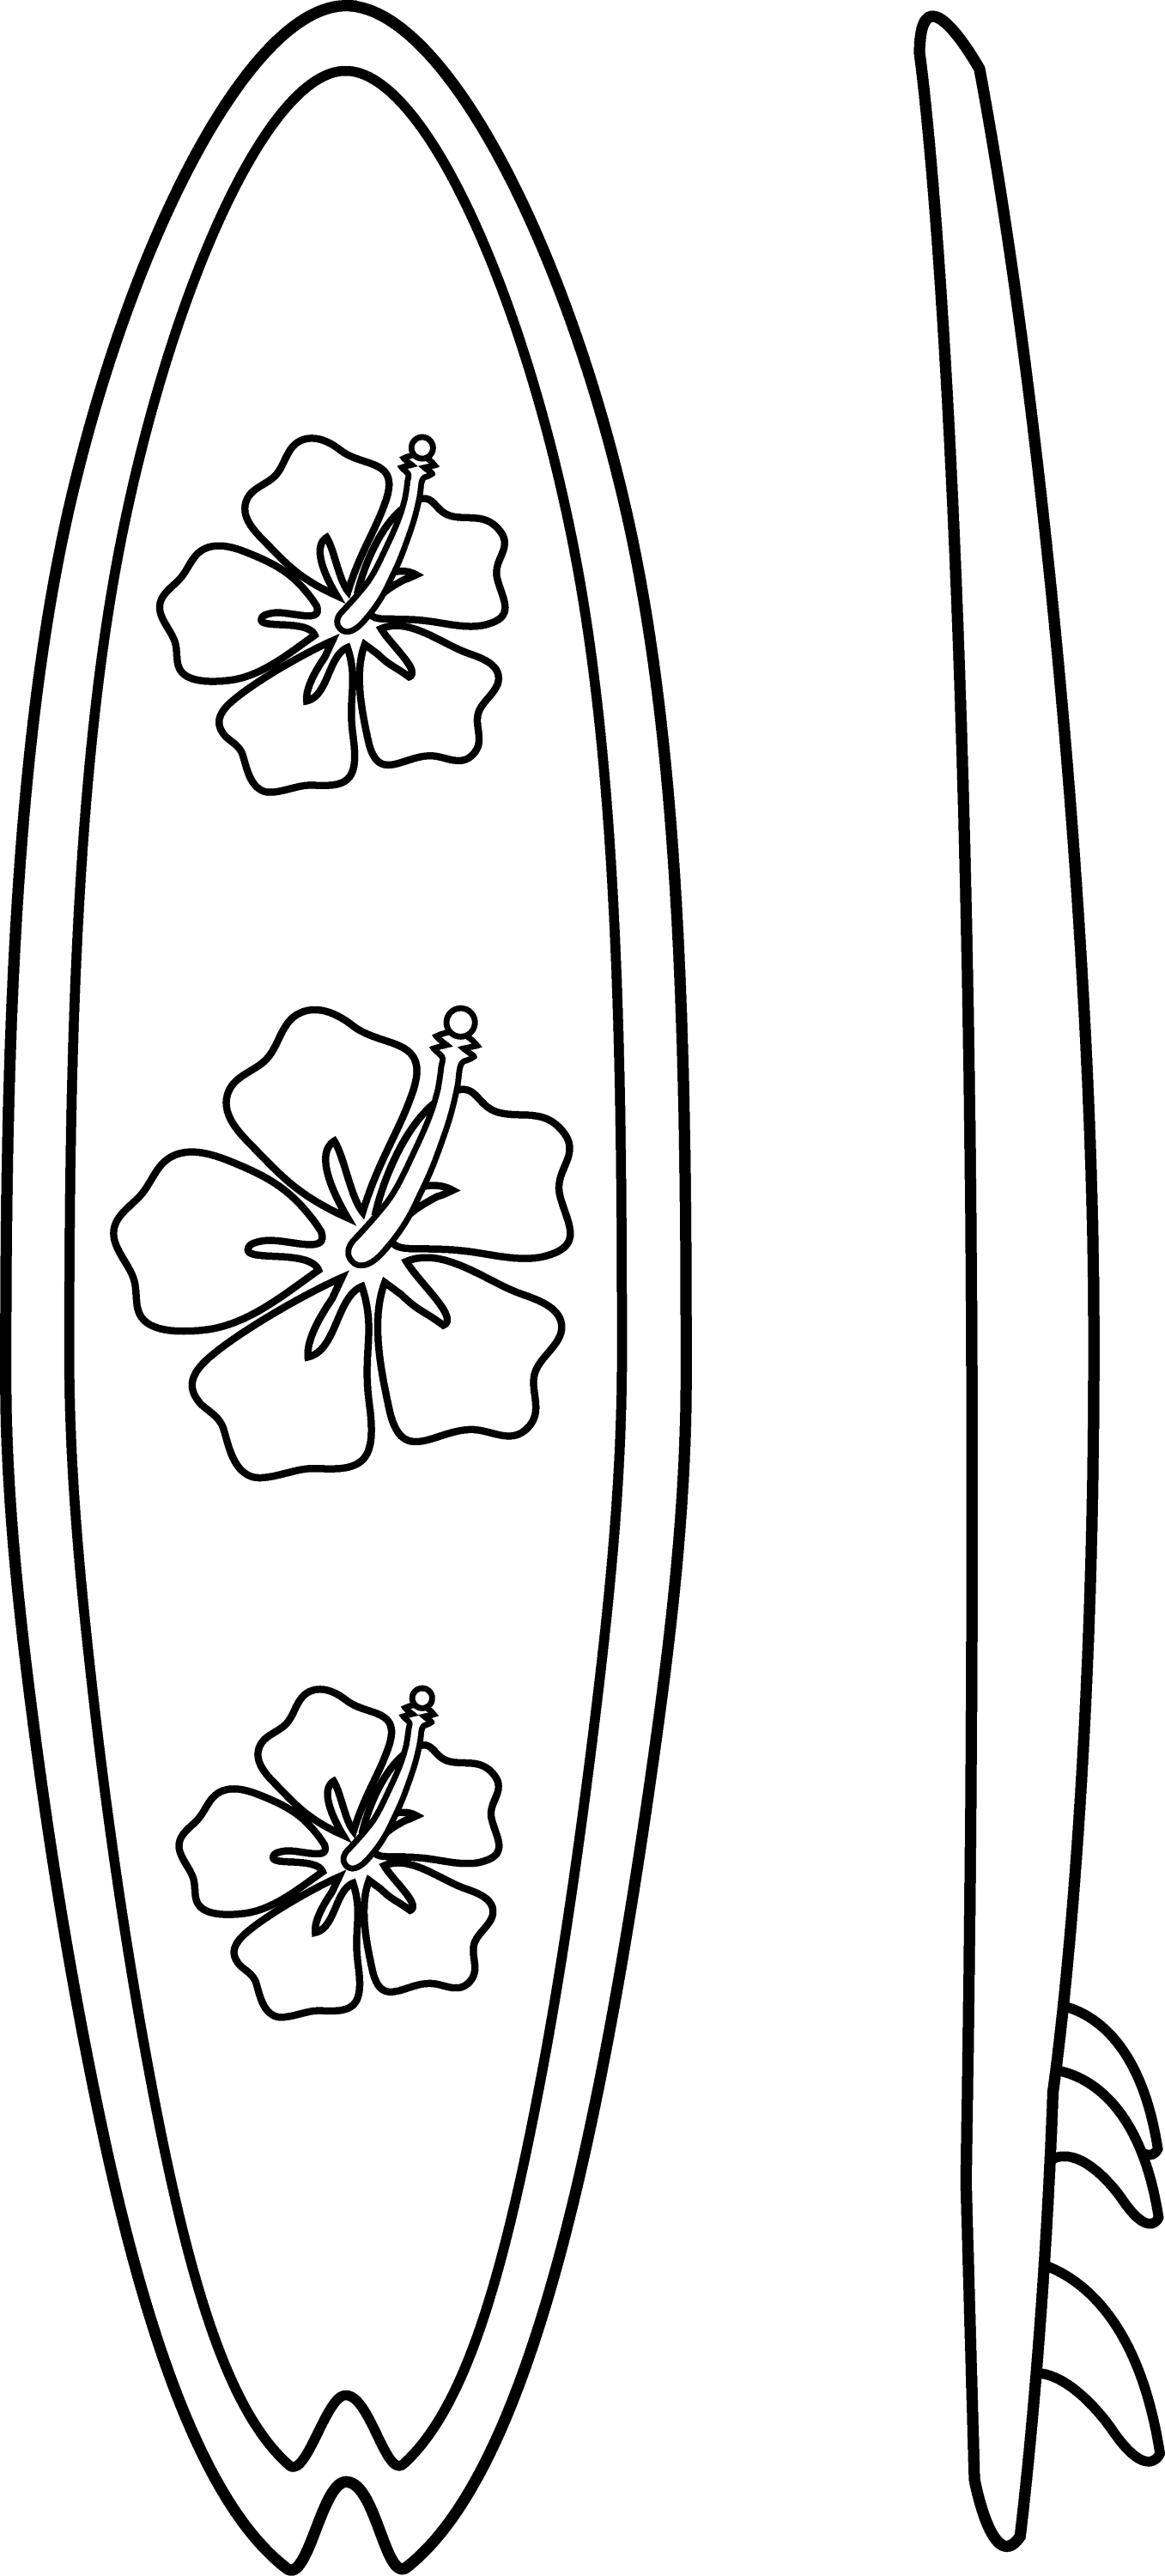 Surfboards Line Art Free Clip Art Surfboard Coloring Page